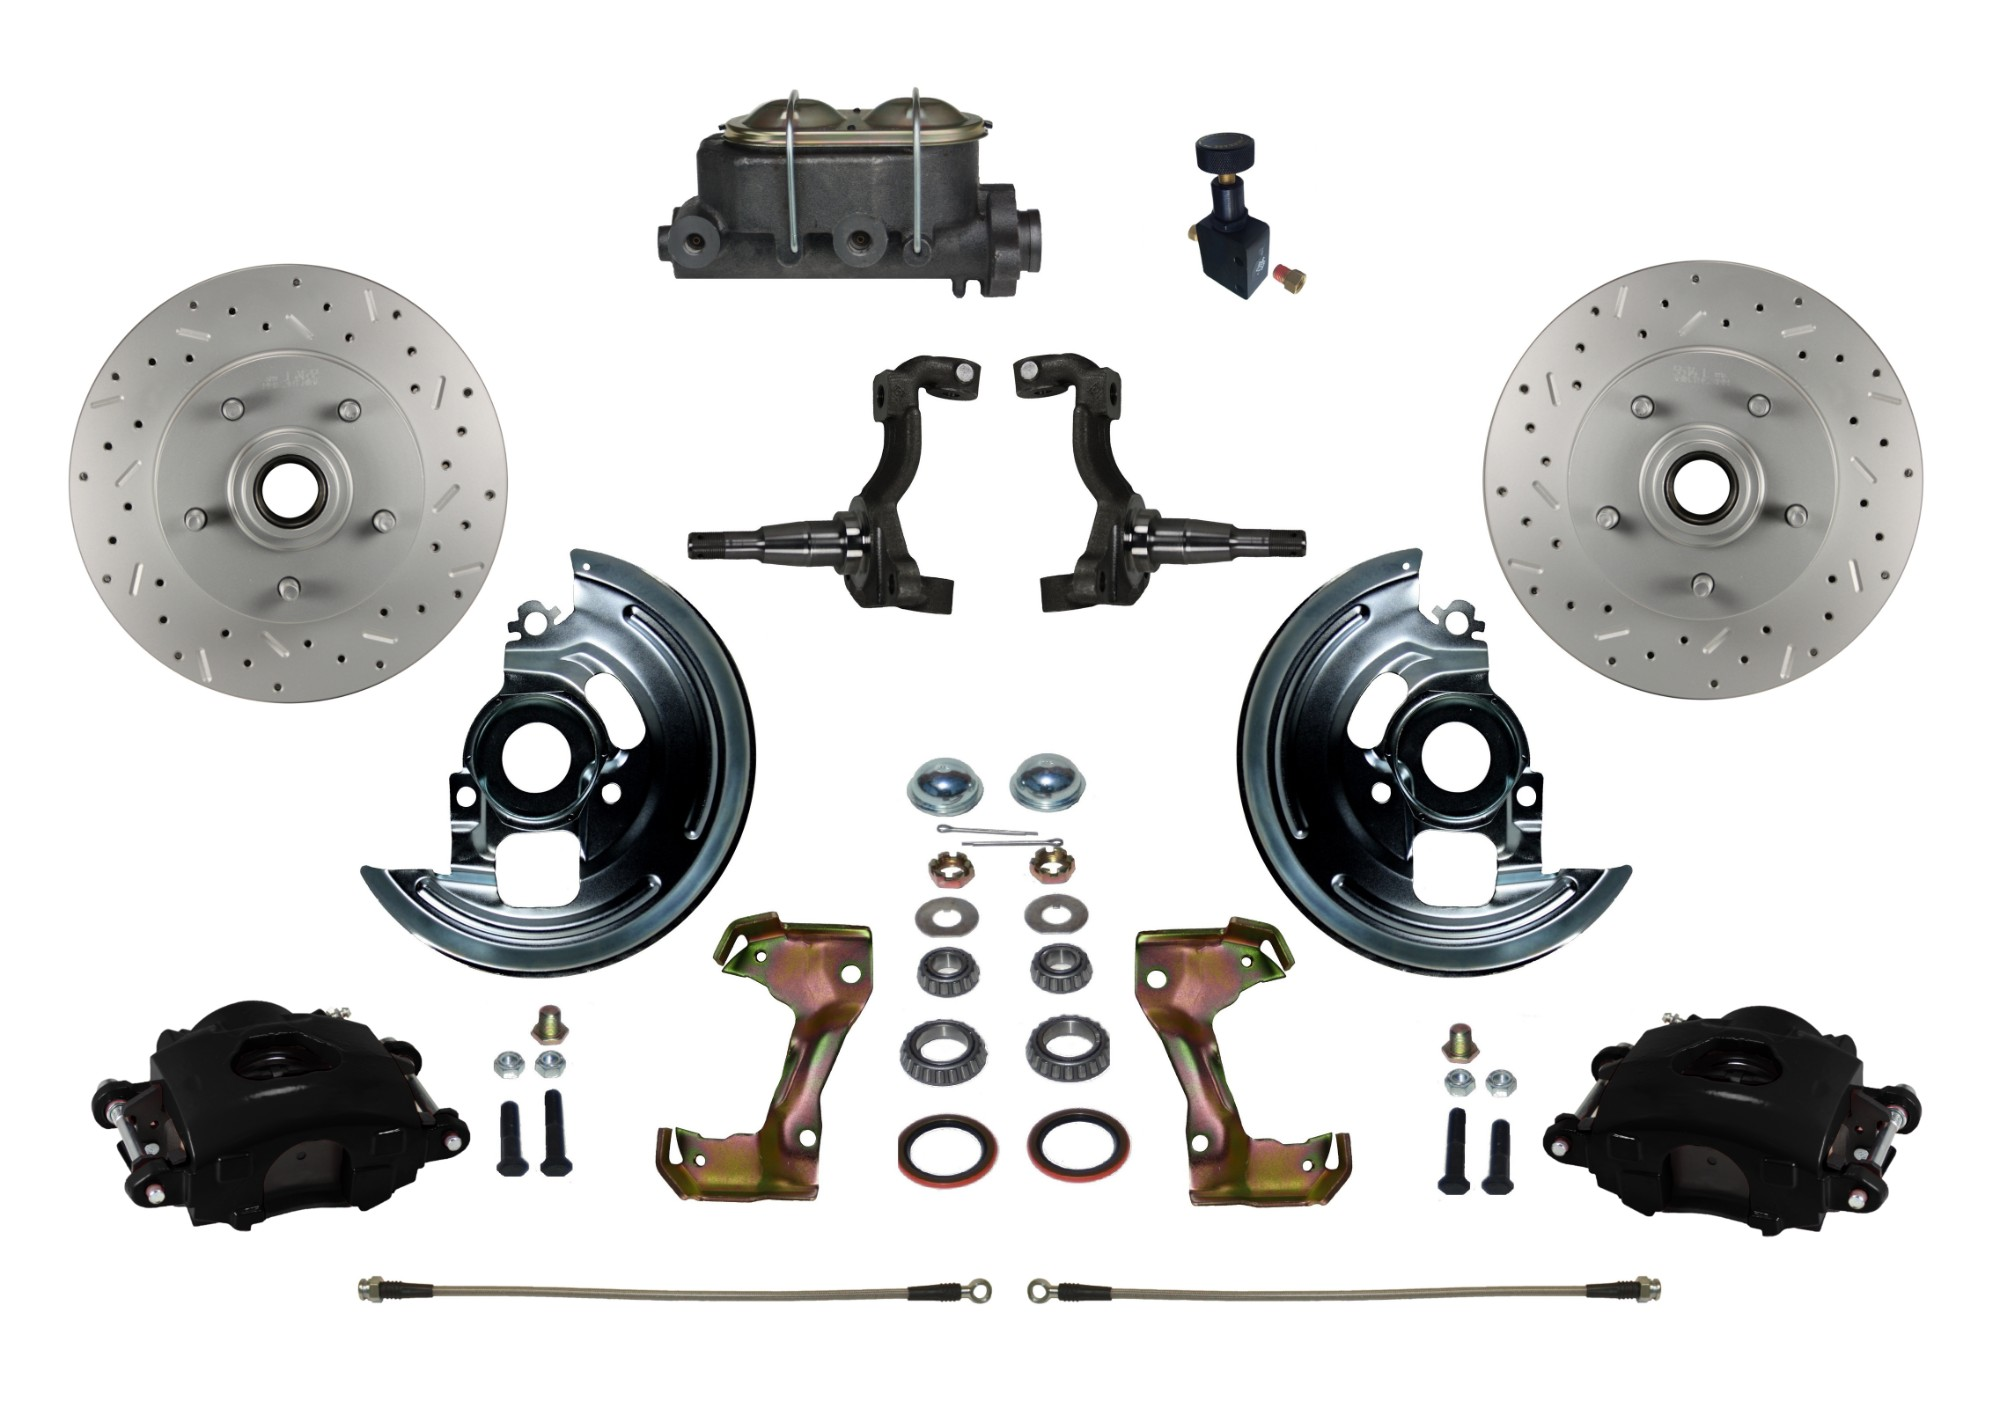 LEED Brakes BFC1002-305X Front Disc Brake Kit - Manual Brakes - Black - MaxGrip